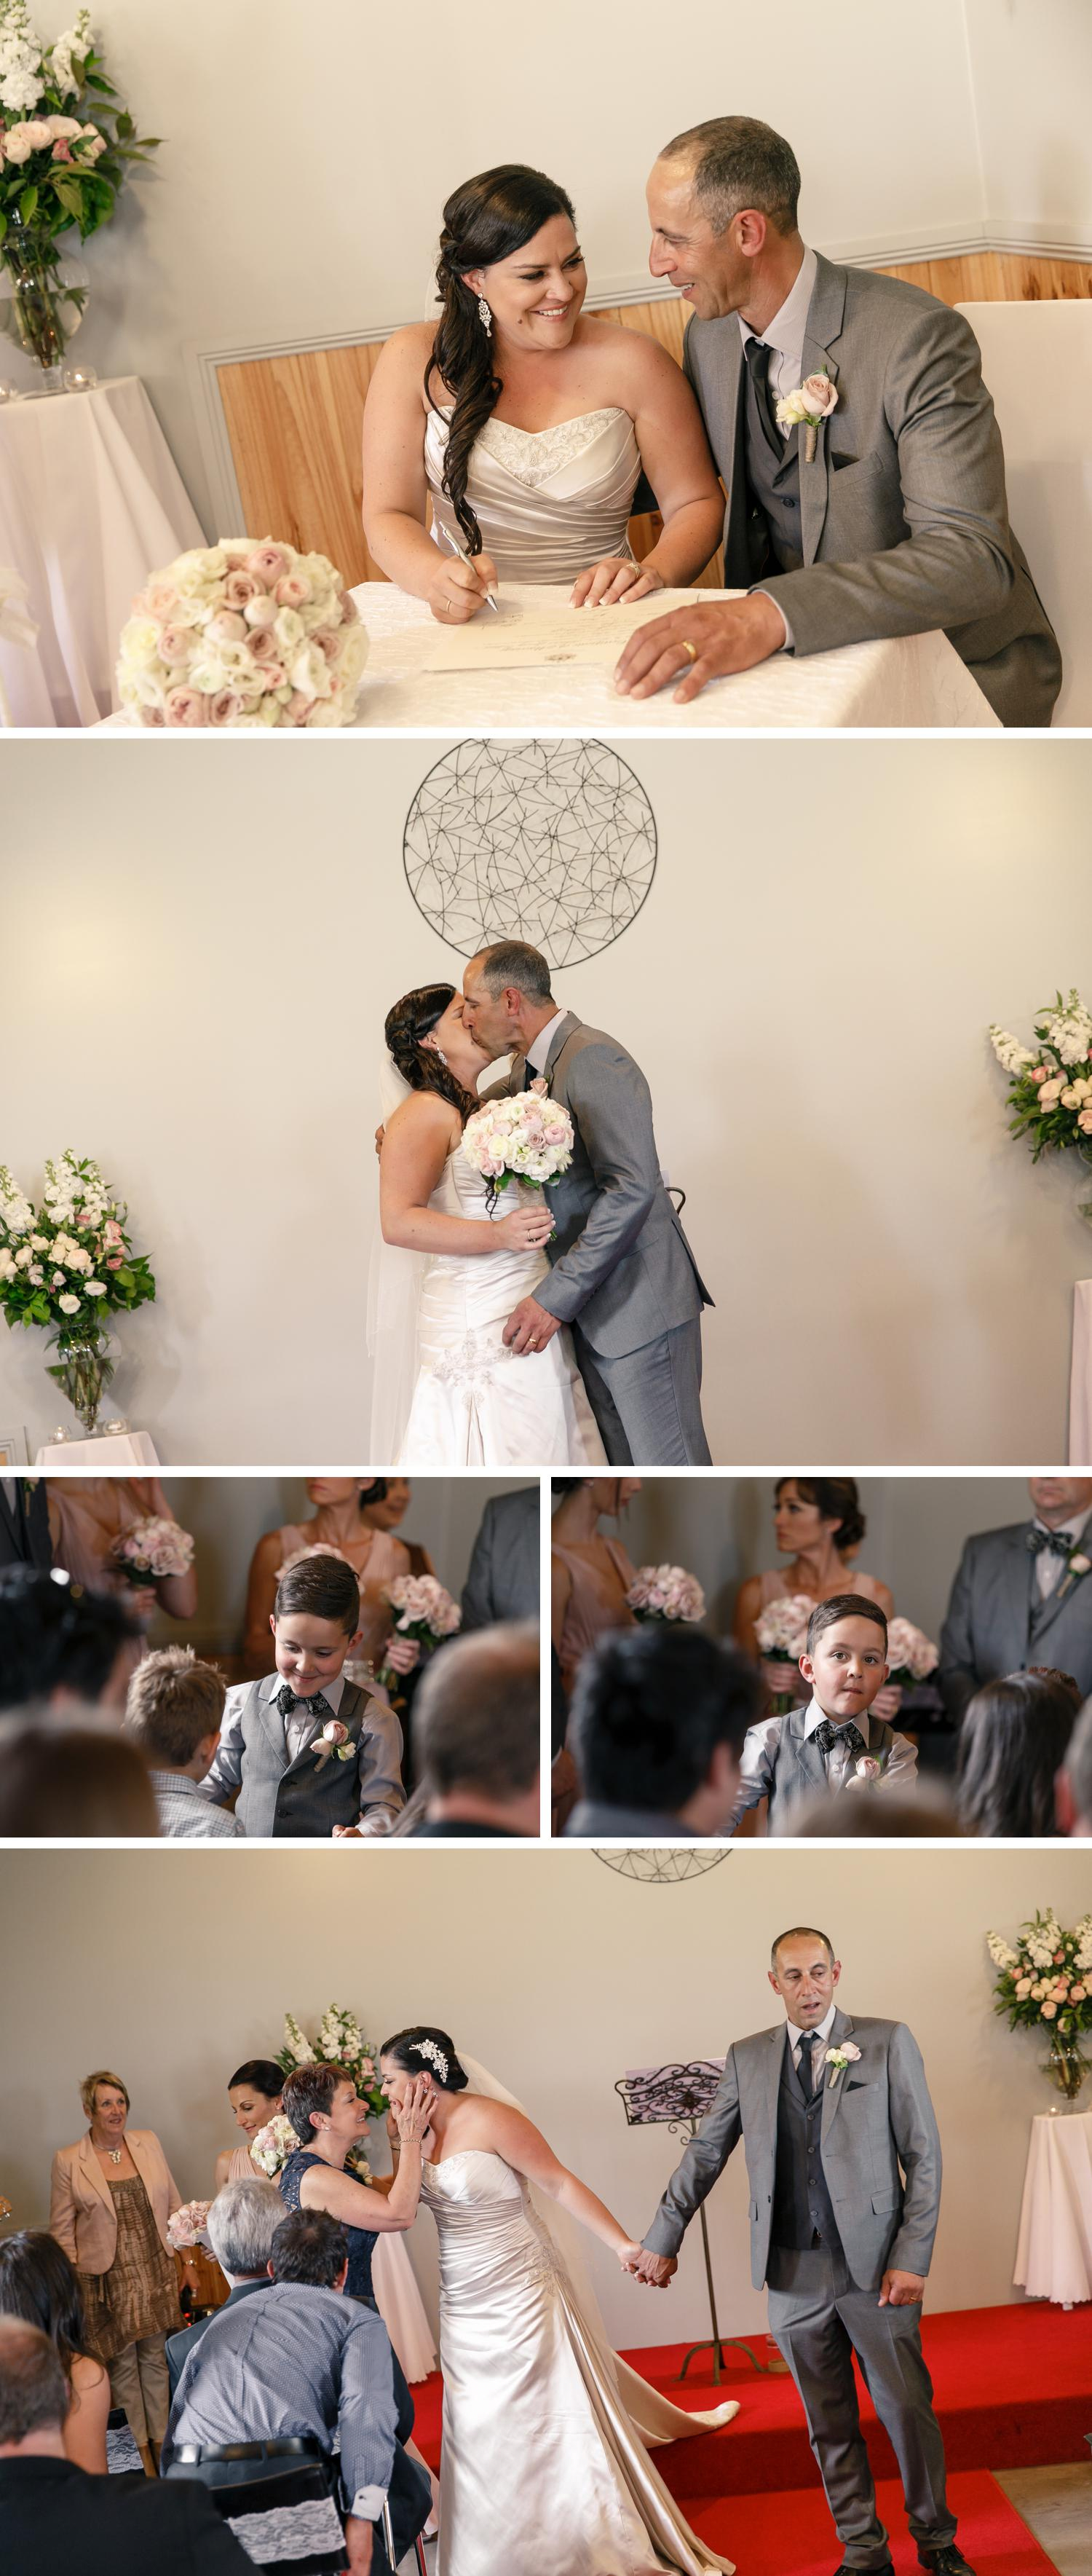 Traralgon Gippsland Wedding, Bride and Groom Embracing, Beautiful Wedding Dress Photo by Danae Studios